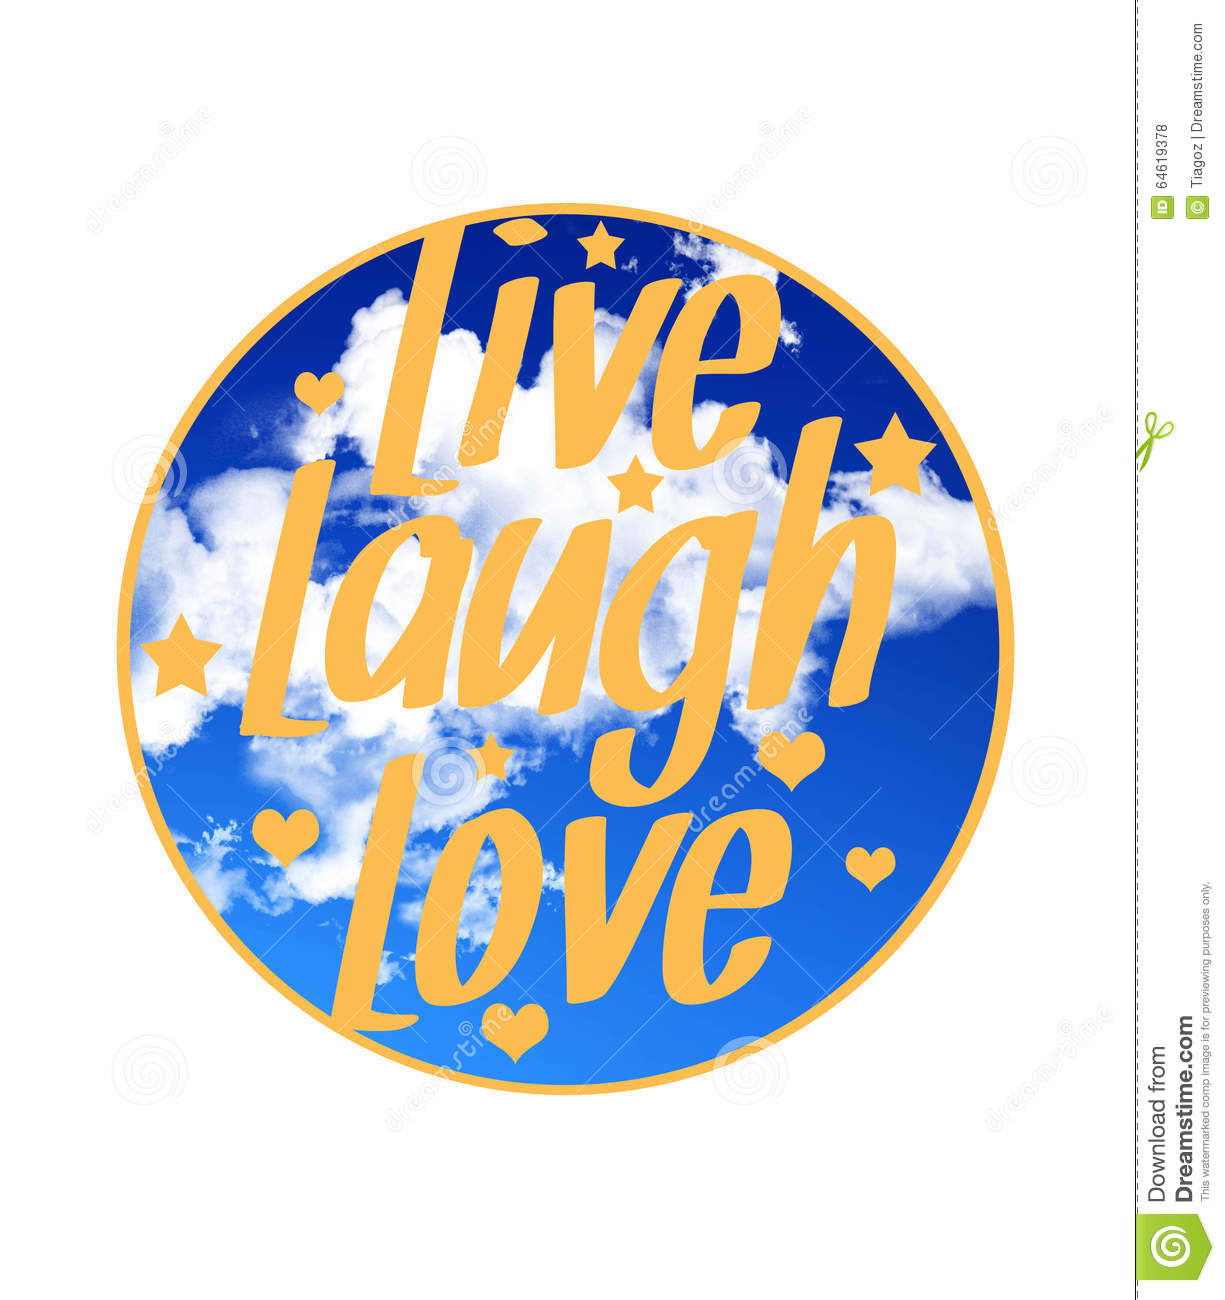 Live laugh love quote stock illustration. Illustration of live ...